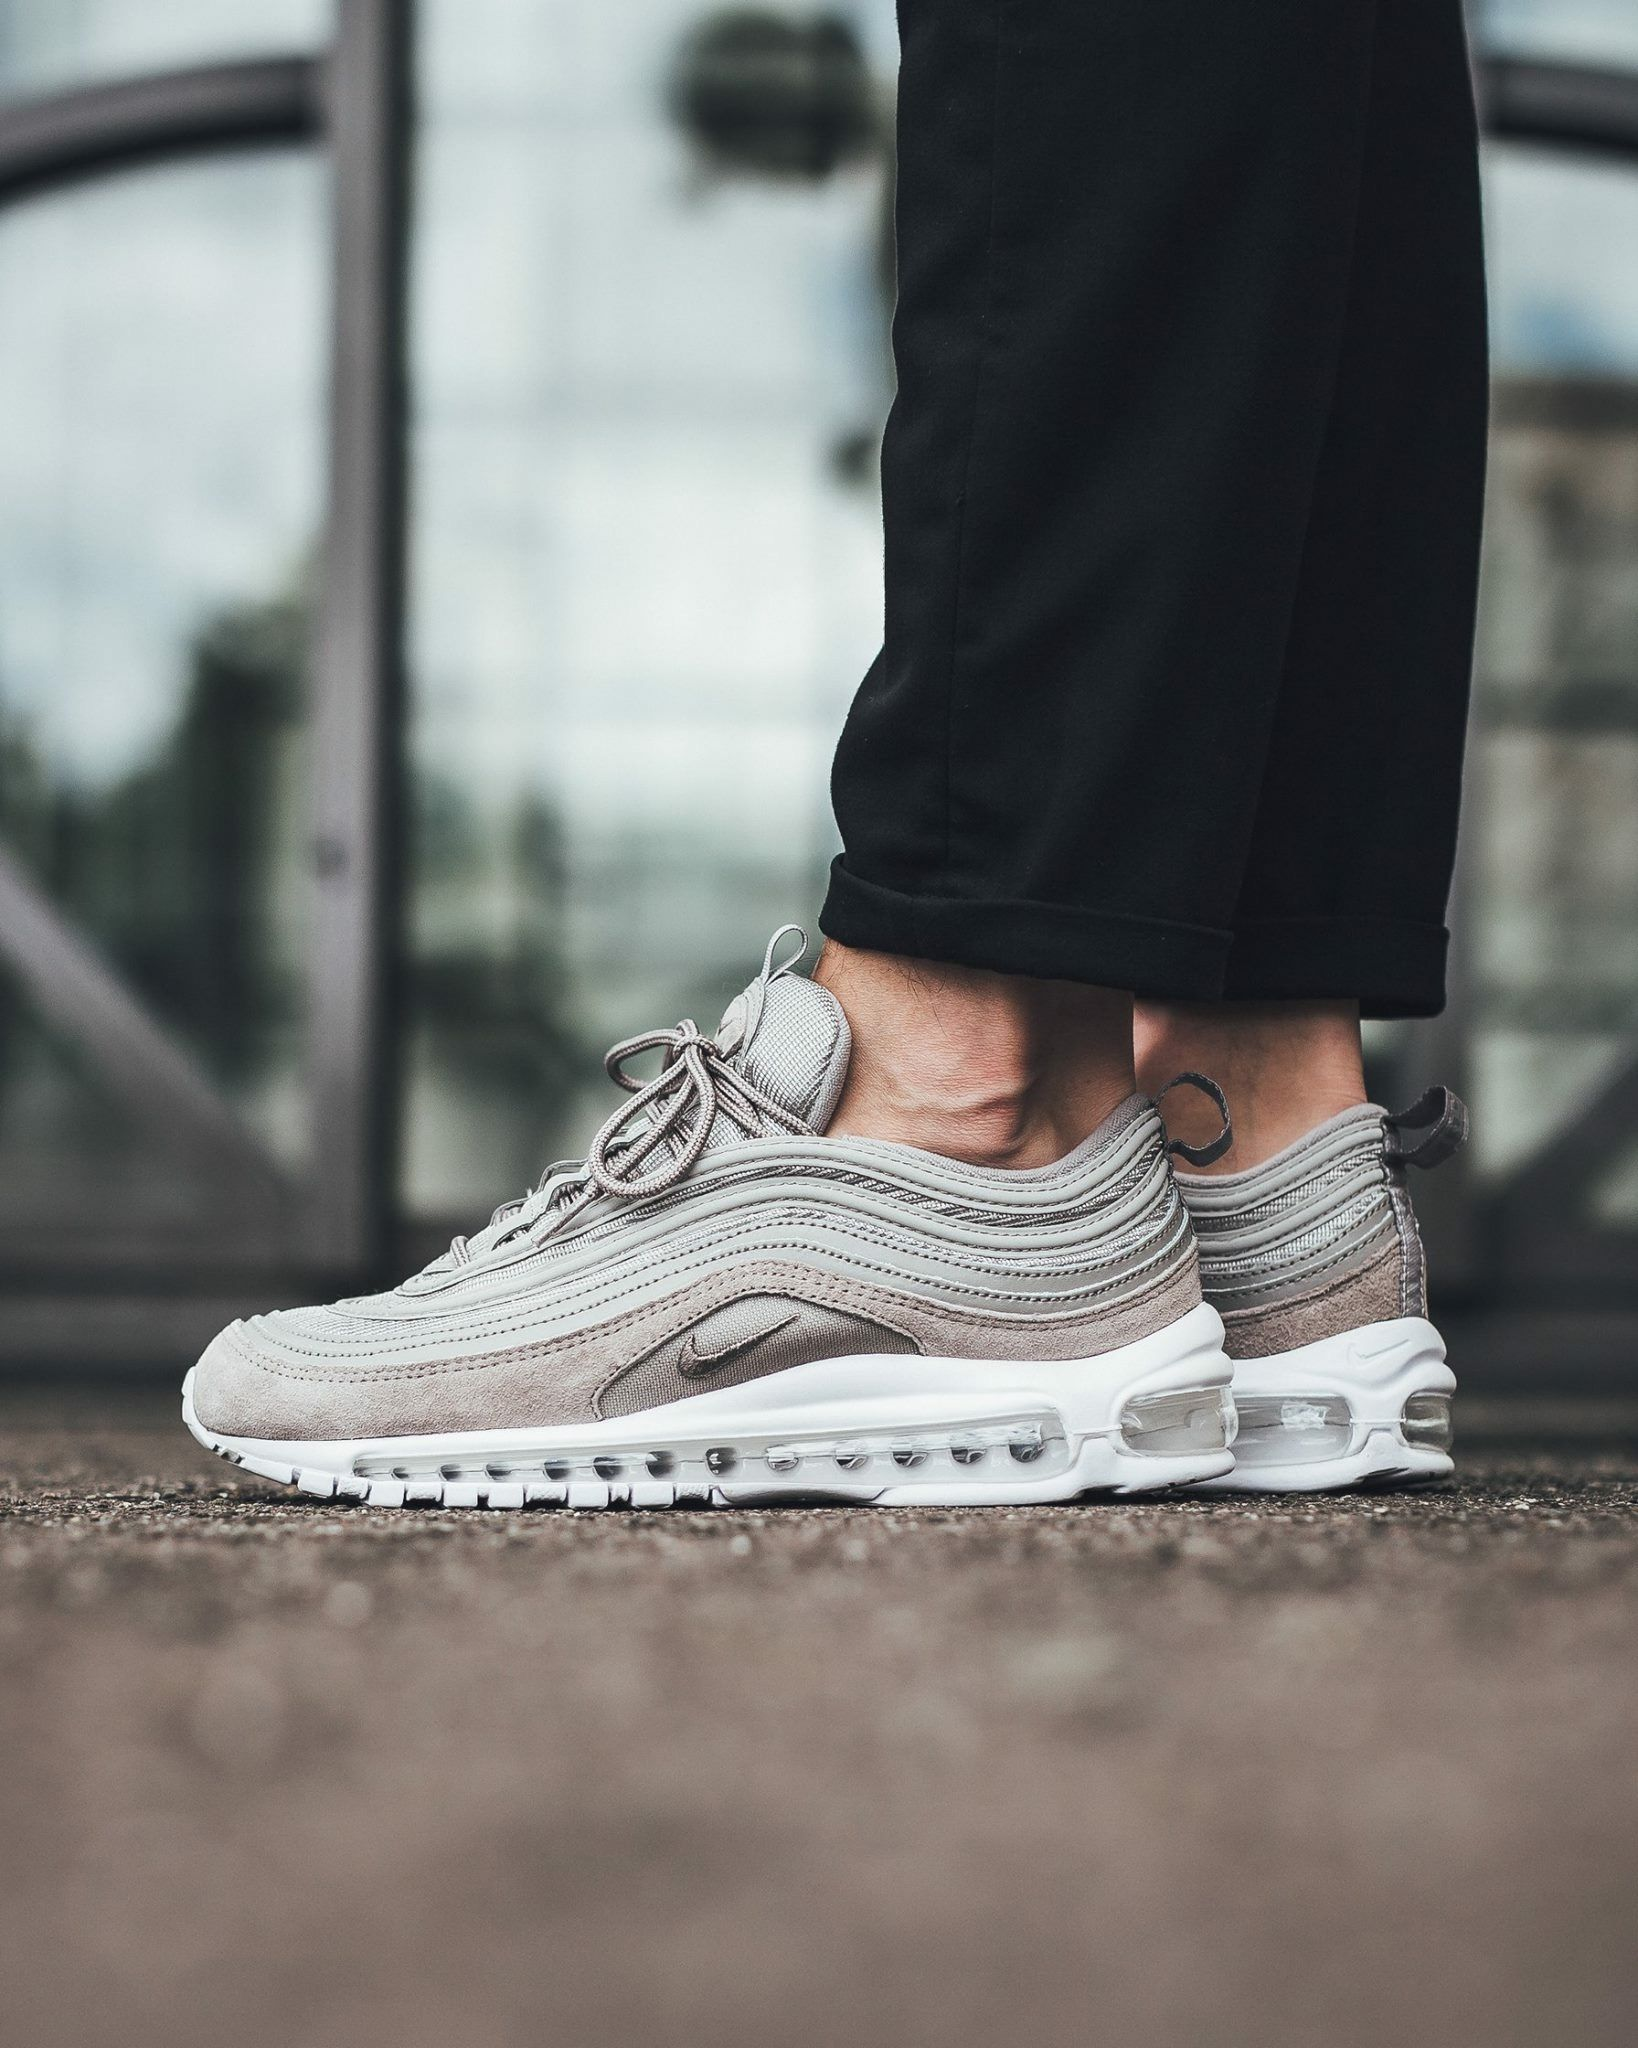 131ca551bb5e Nike Air Max 97 https   tumblr.com ZnVlHd2OD7XUq Jordan Basketball